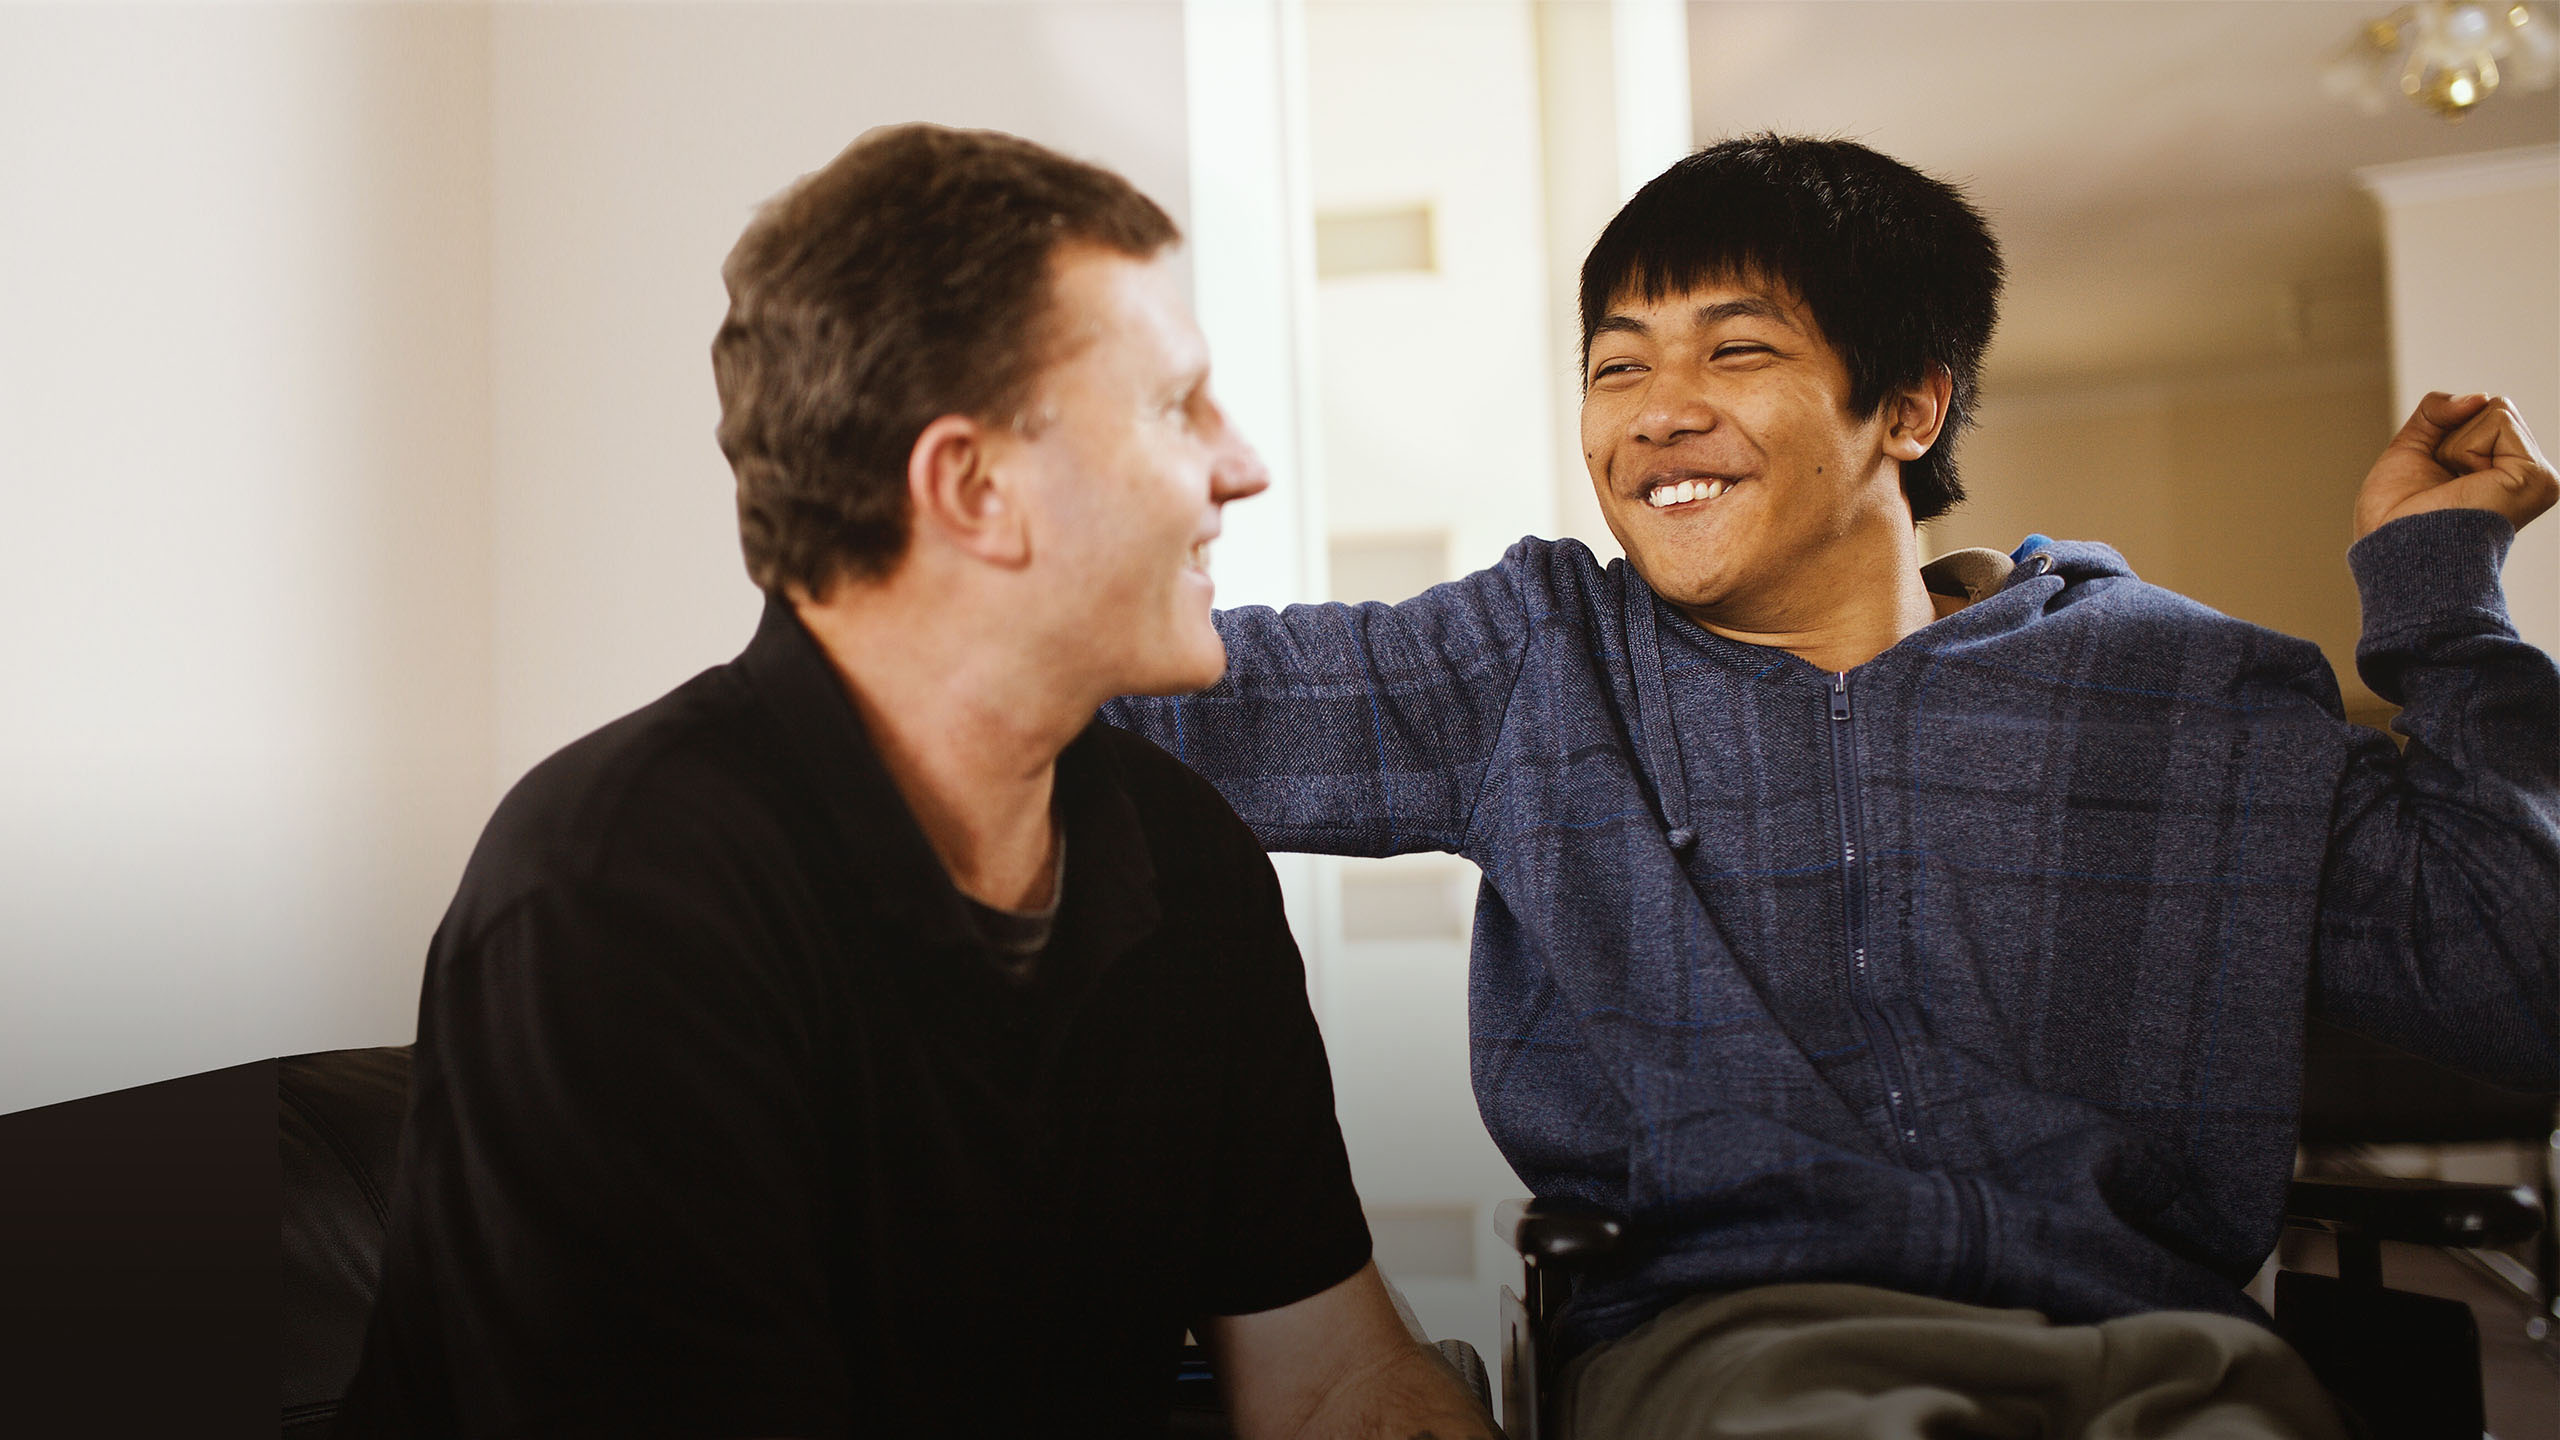 Client and carer smiling